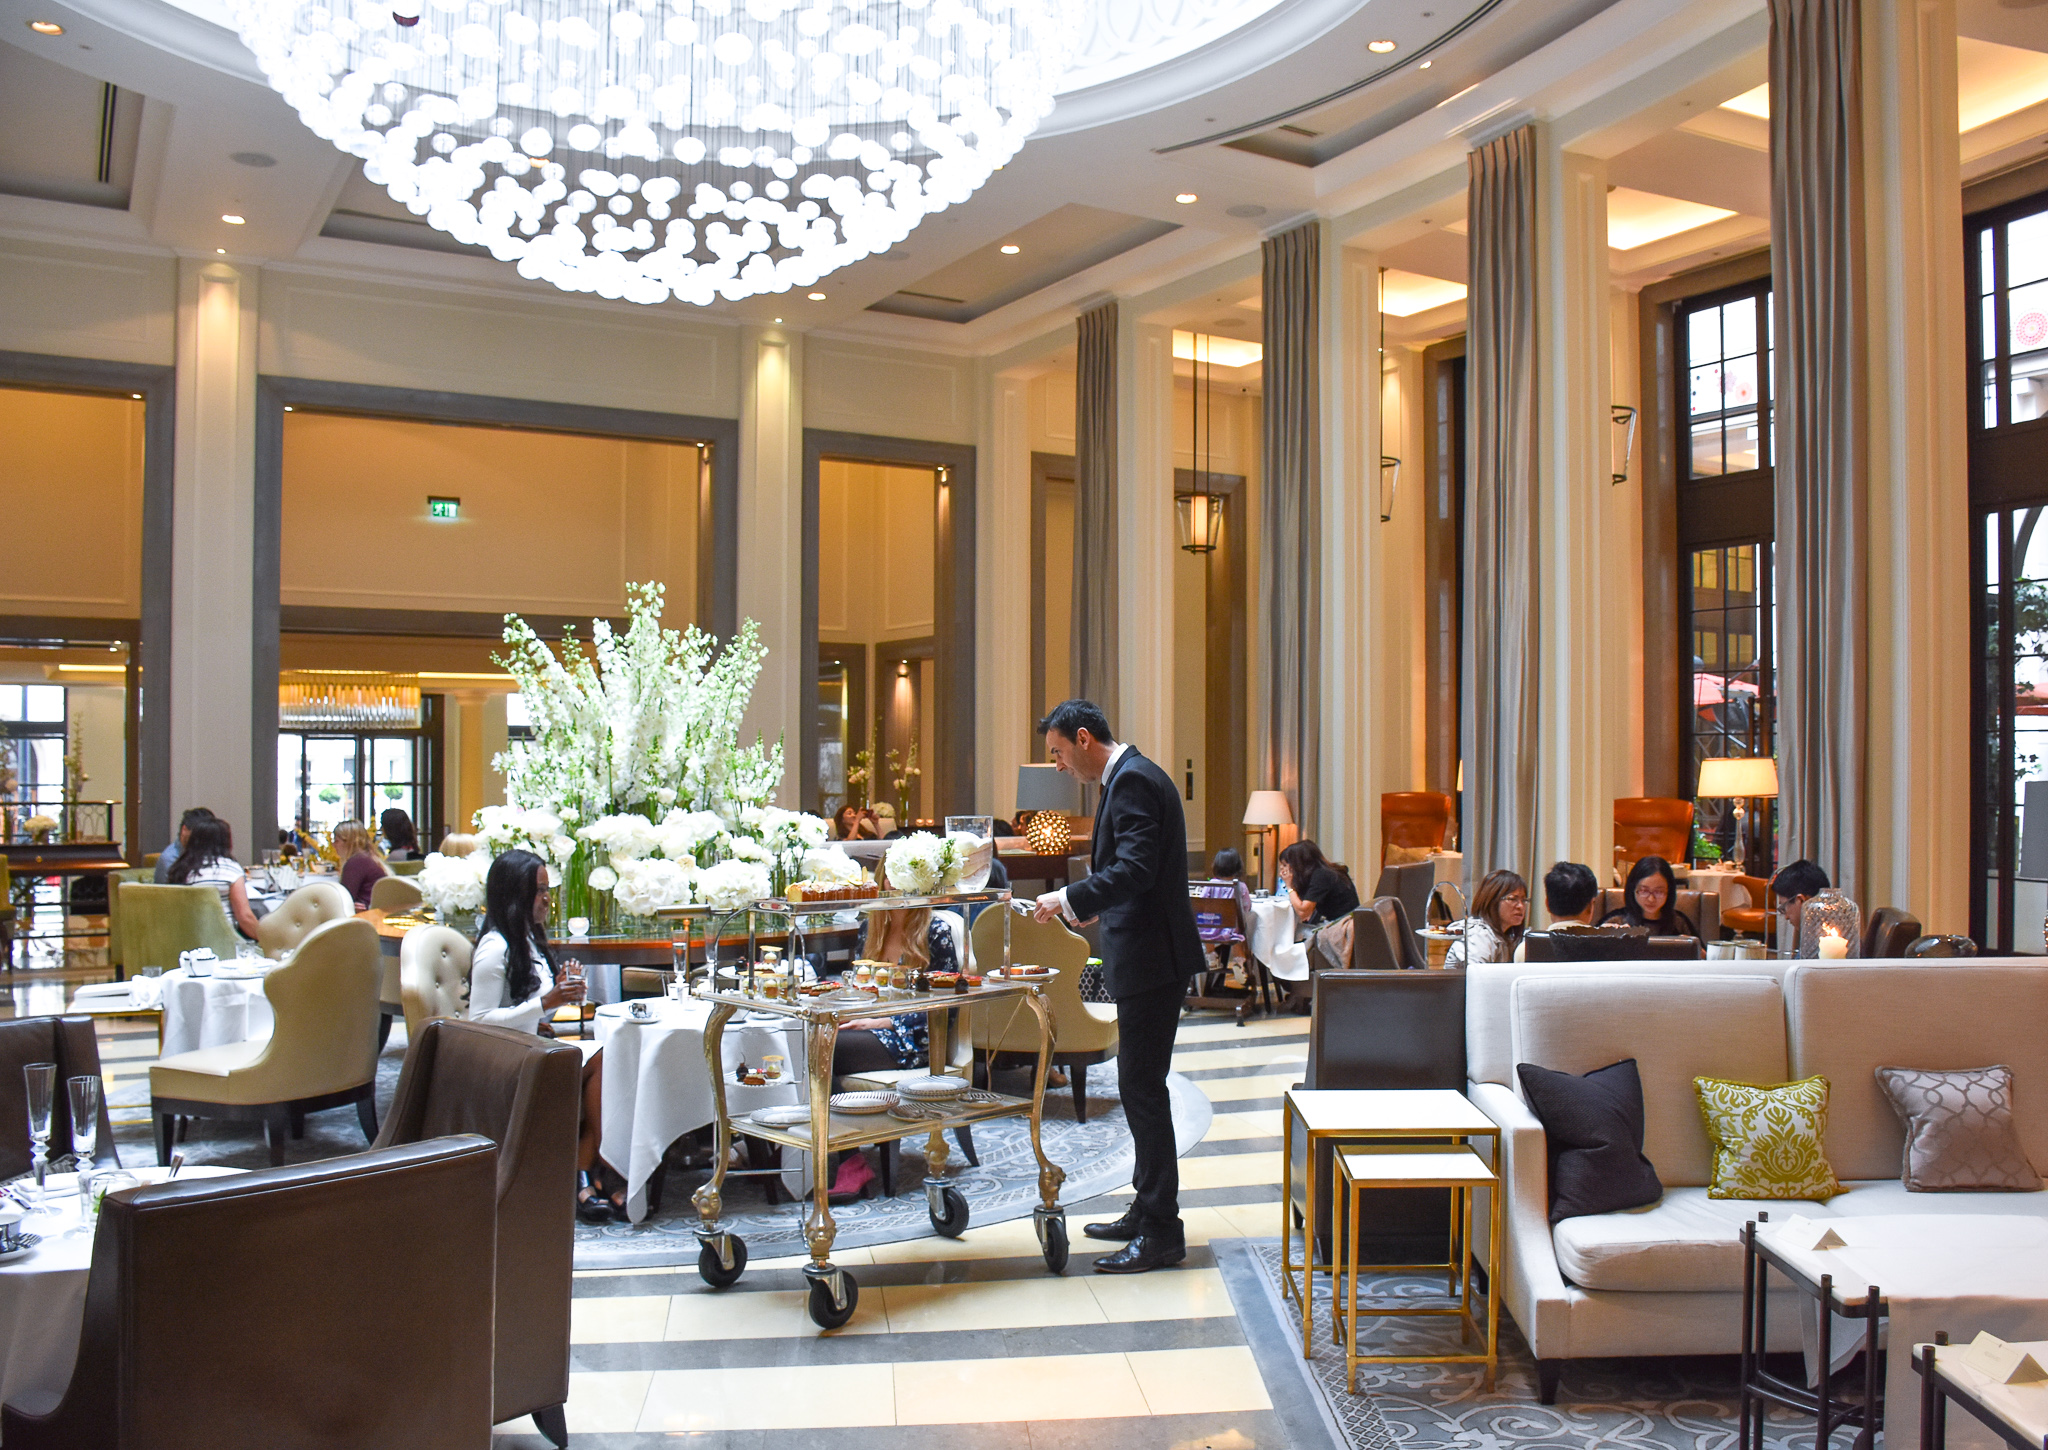 Corinthia Hotel London Afternoon Tea Review: Five Star Service in ...